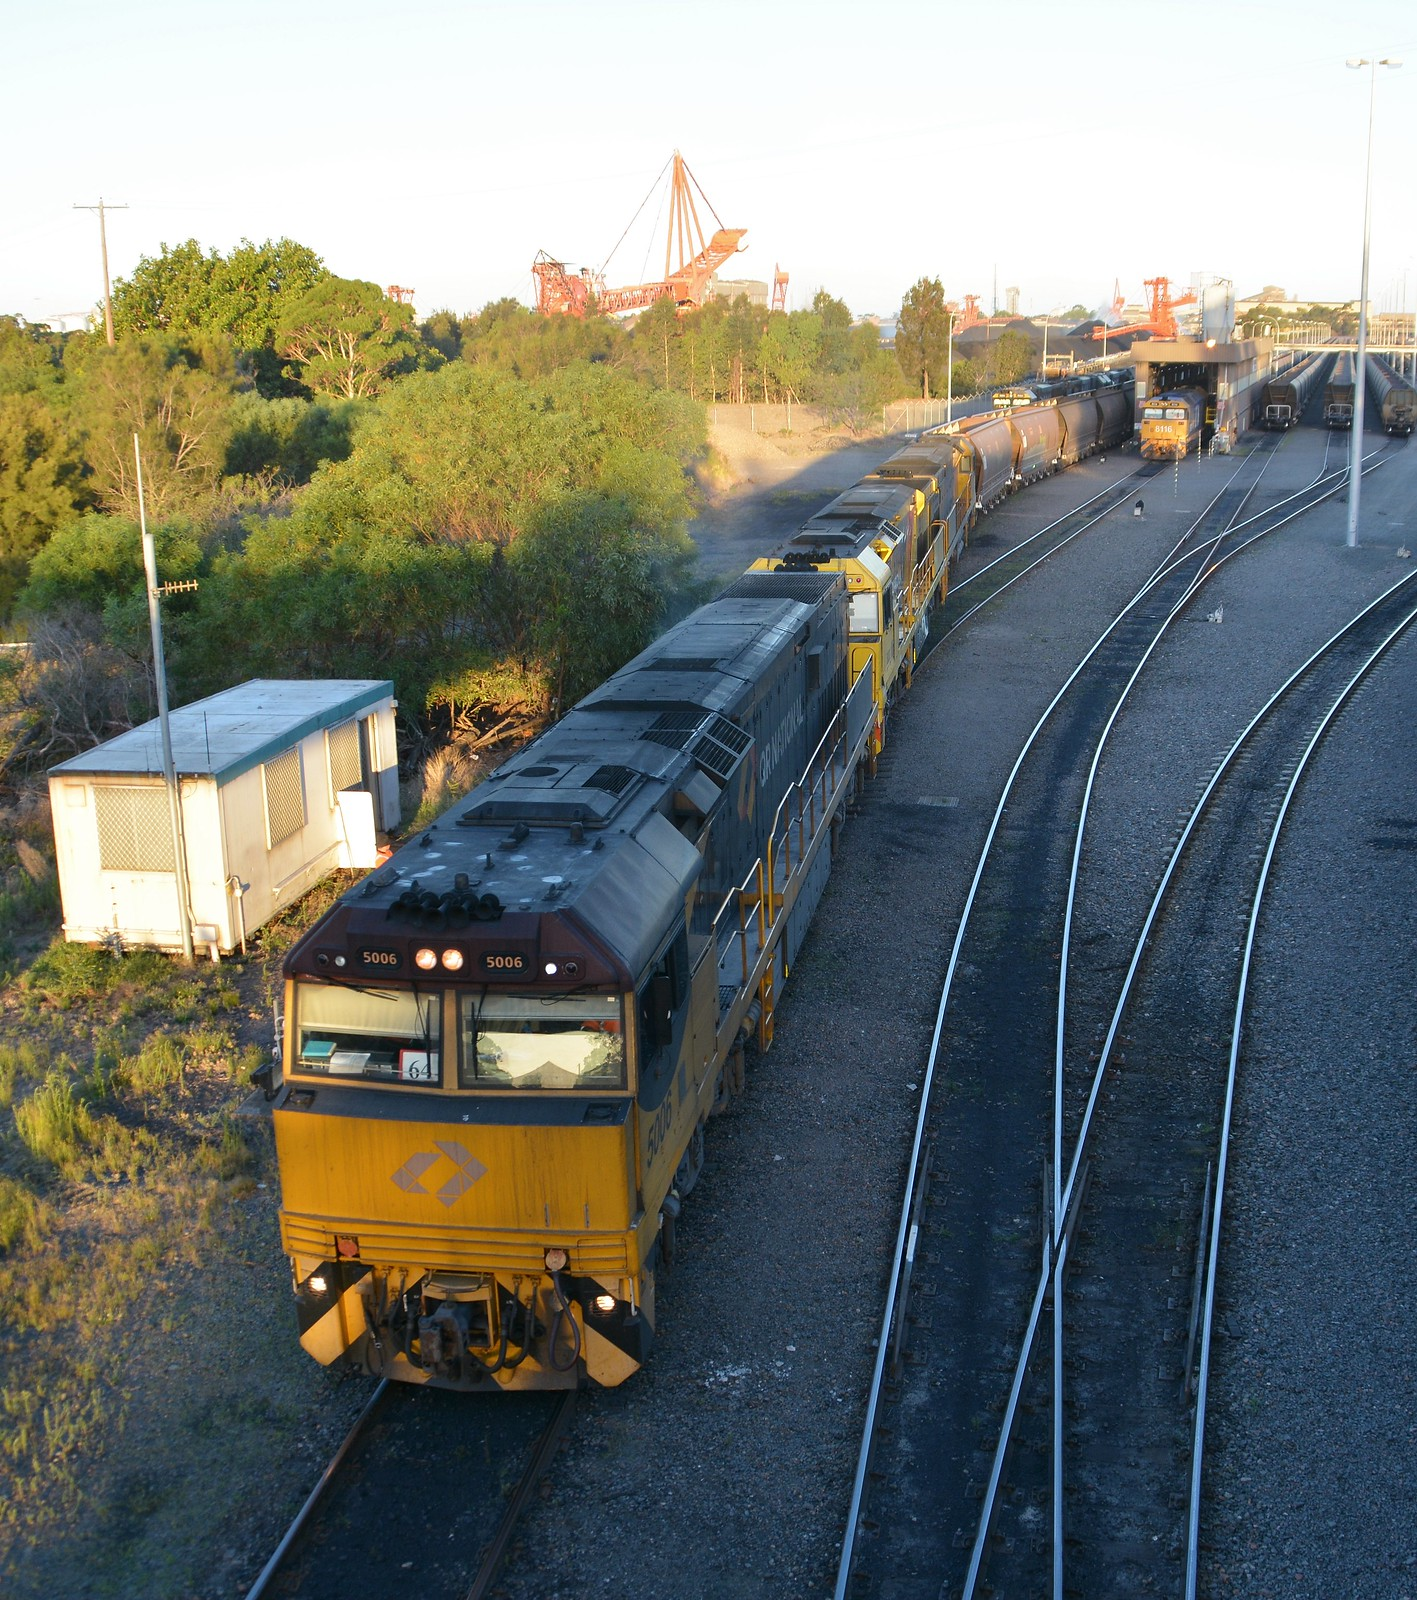 5006-5033-5026 Port Waratah Industrial Drive Rd Bridge by LOCOPOWER